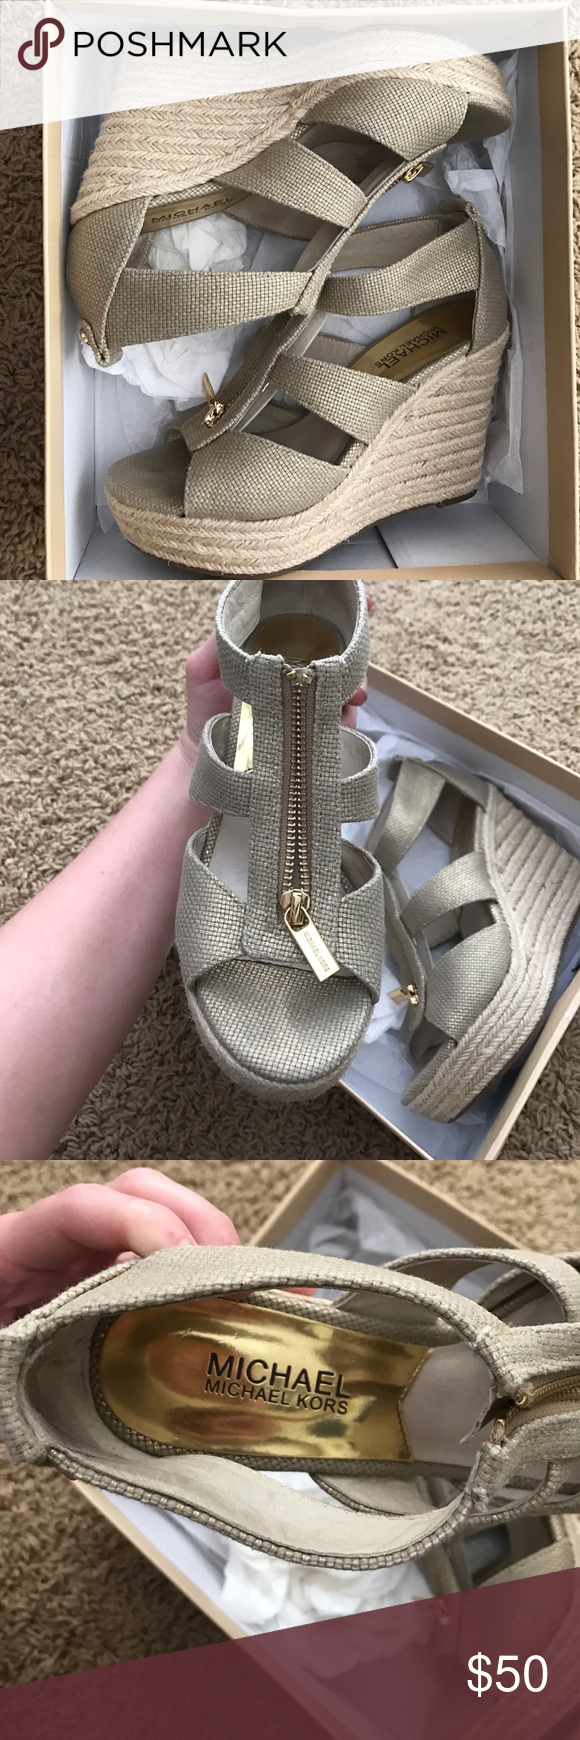 Michael Kors Damita Wedge in Gold SIZE 6 Gold metallic fabric on top with gold zipper. Only been worn a few times, just were a little too small on me. Still has original box!!! Michael Kors Shoes Wedges